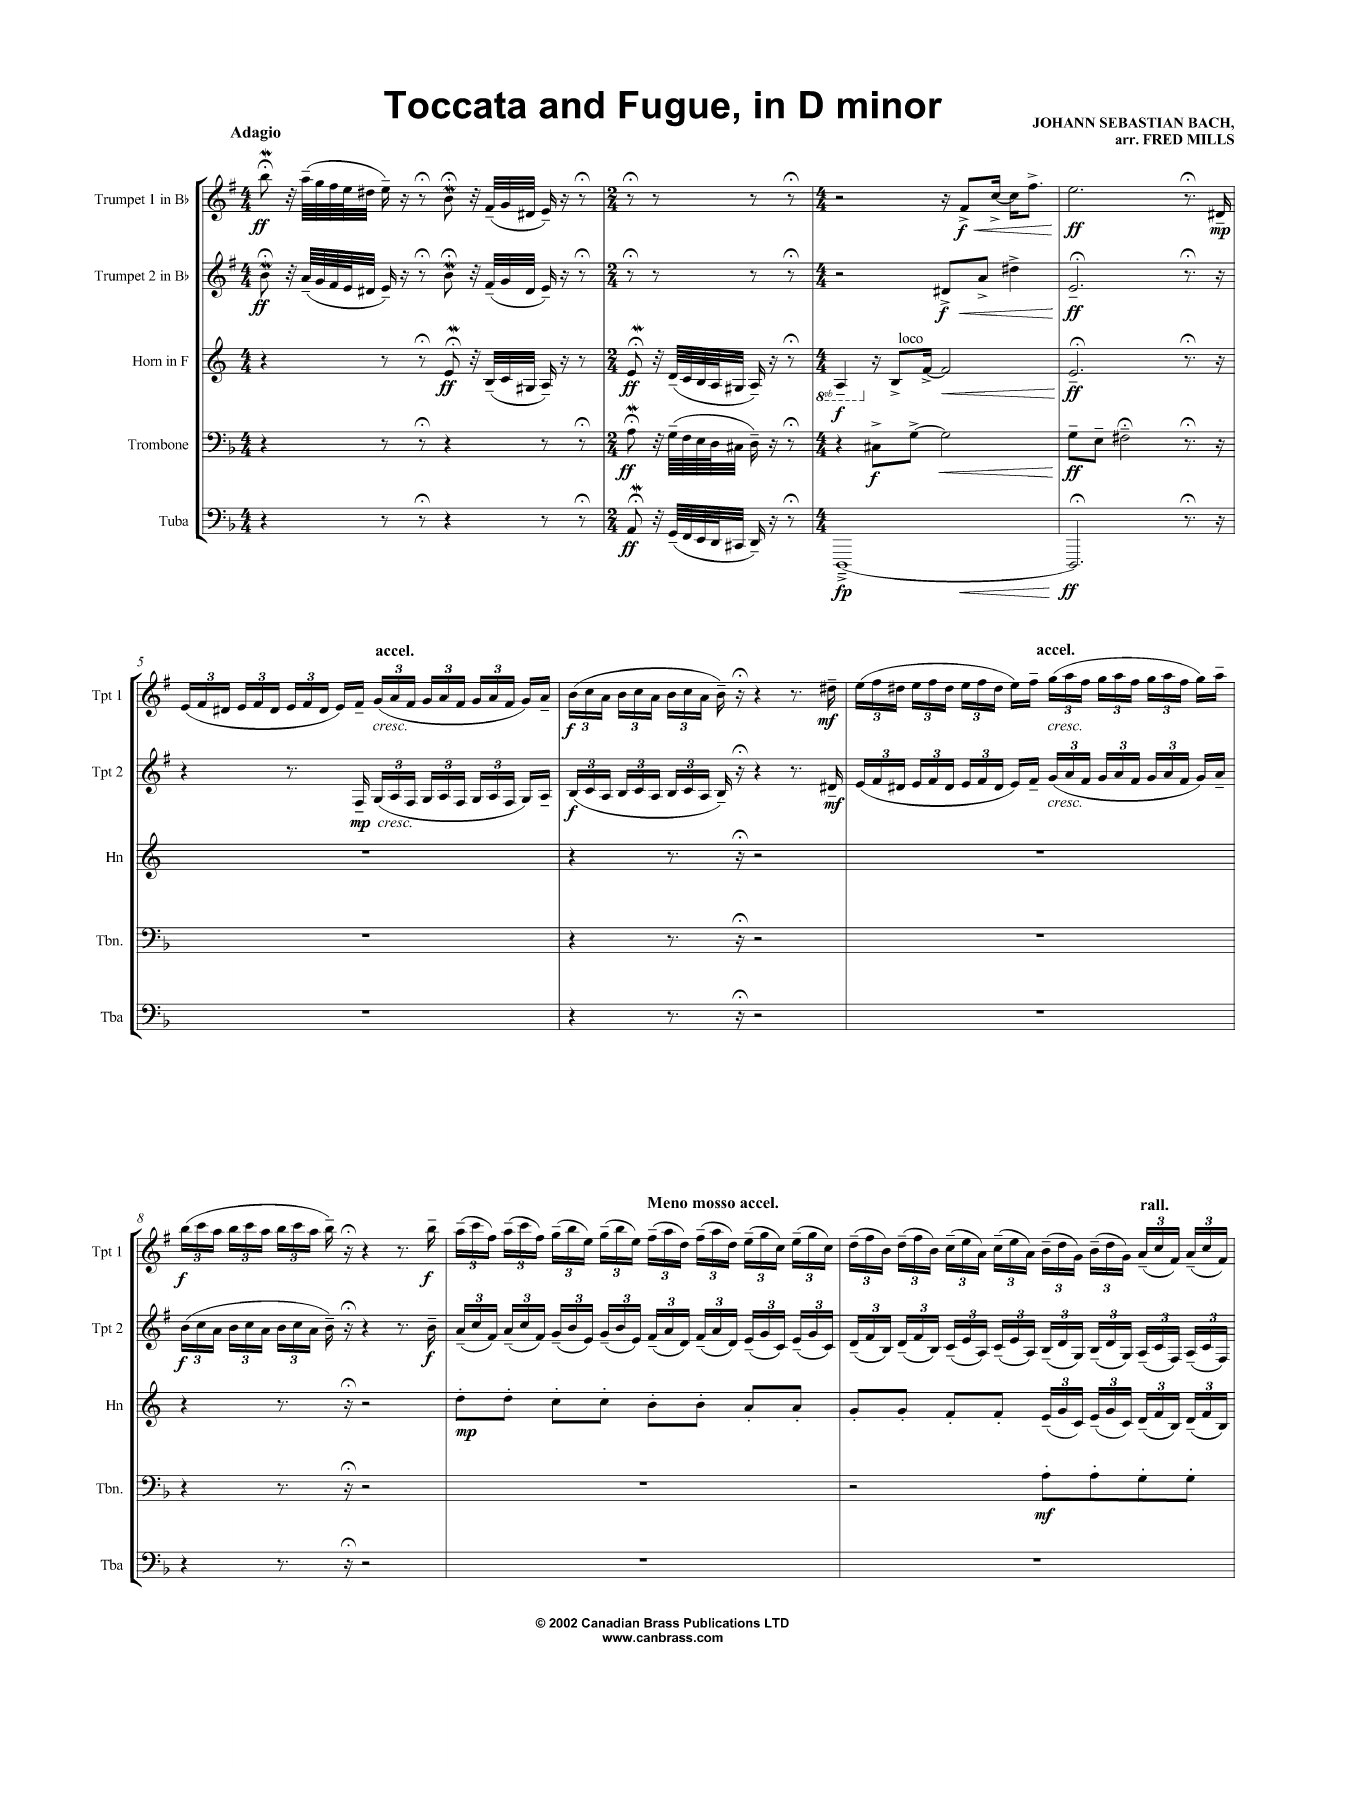 Toccata and Fugue, in D minor - Full Score Sheet Music